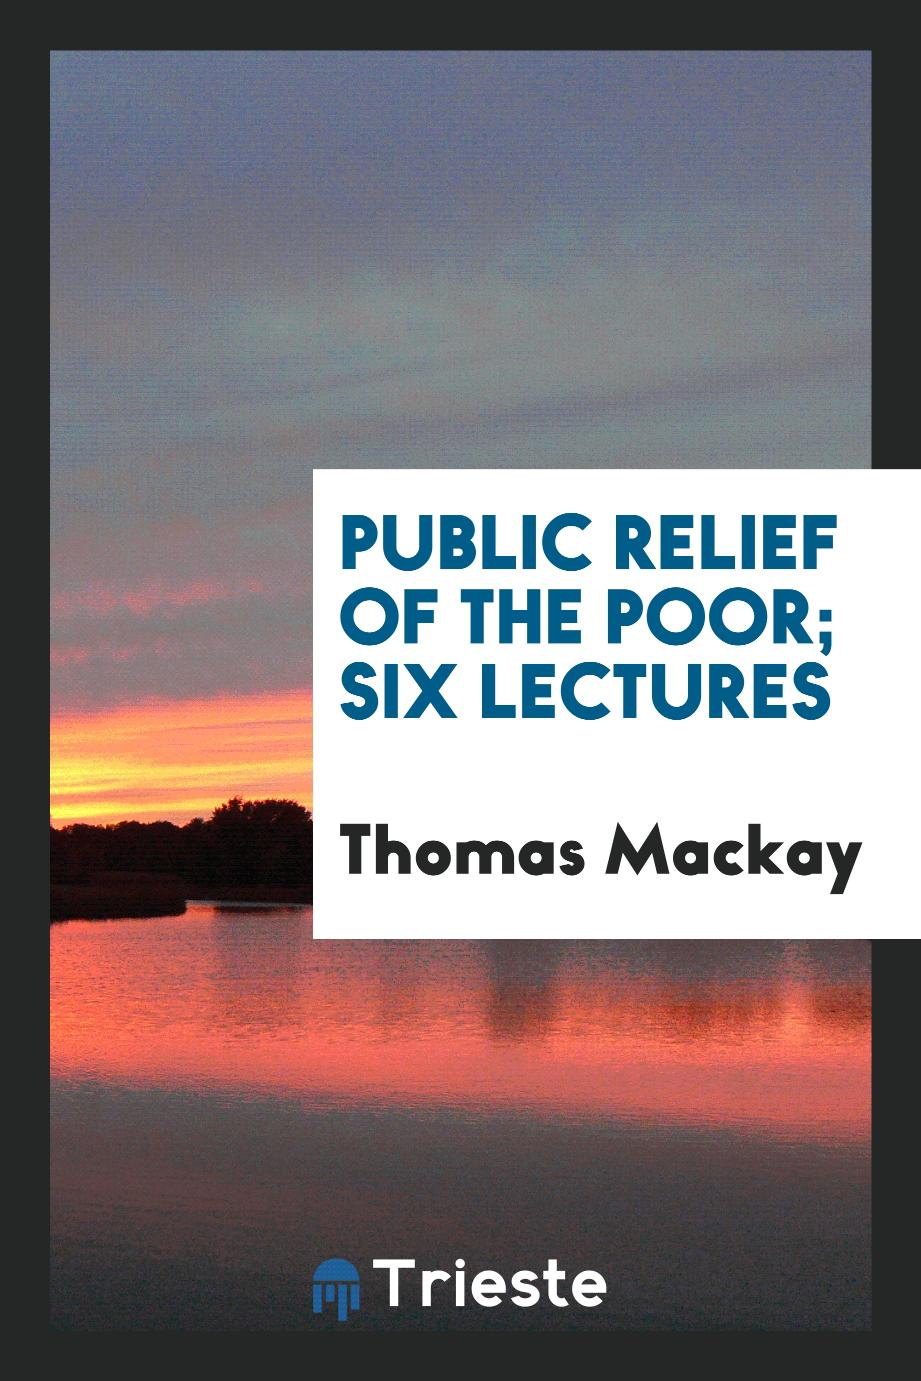 Public relief of the poor; Six lectures